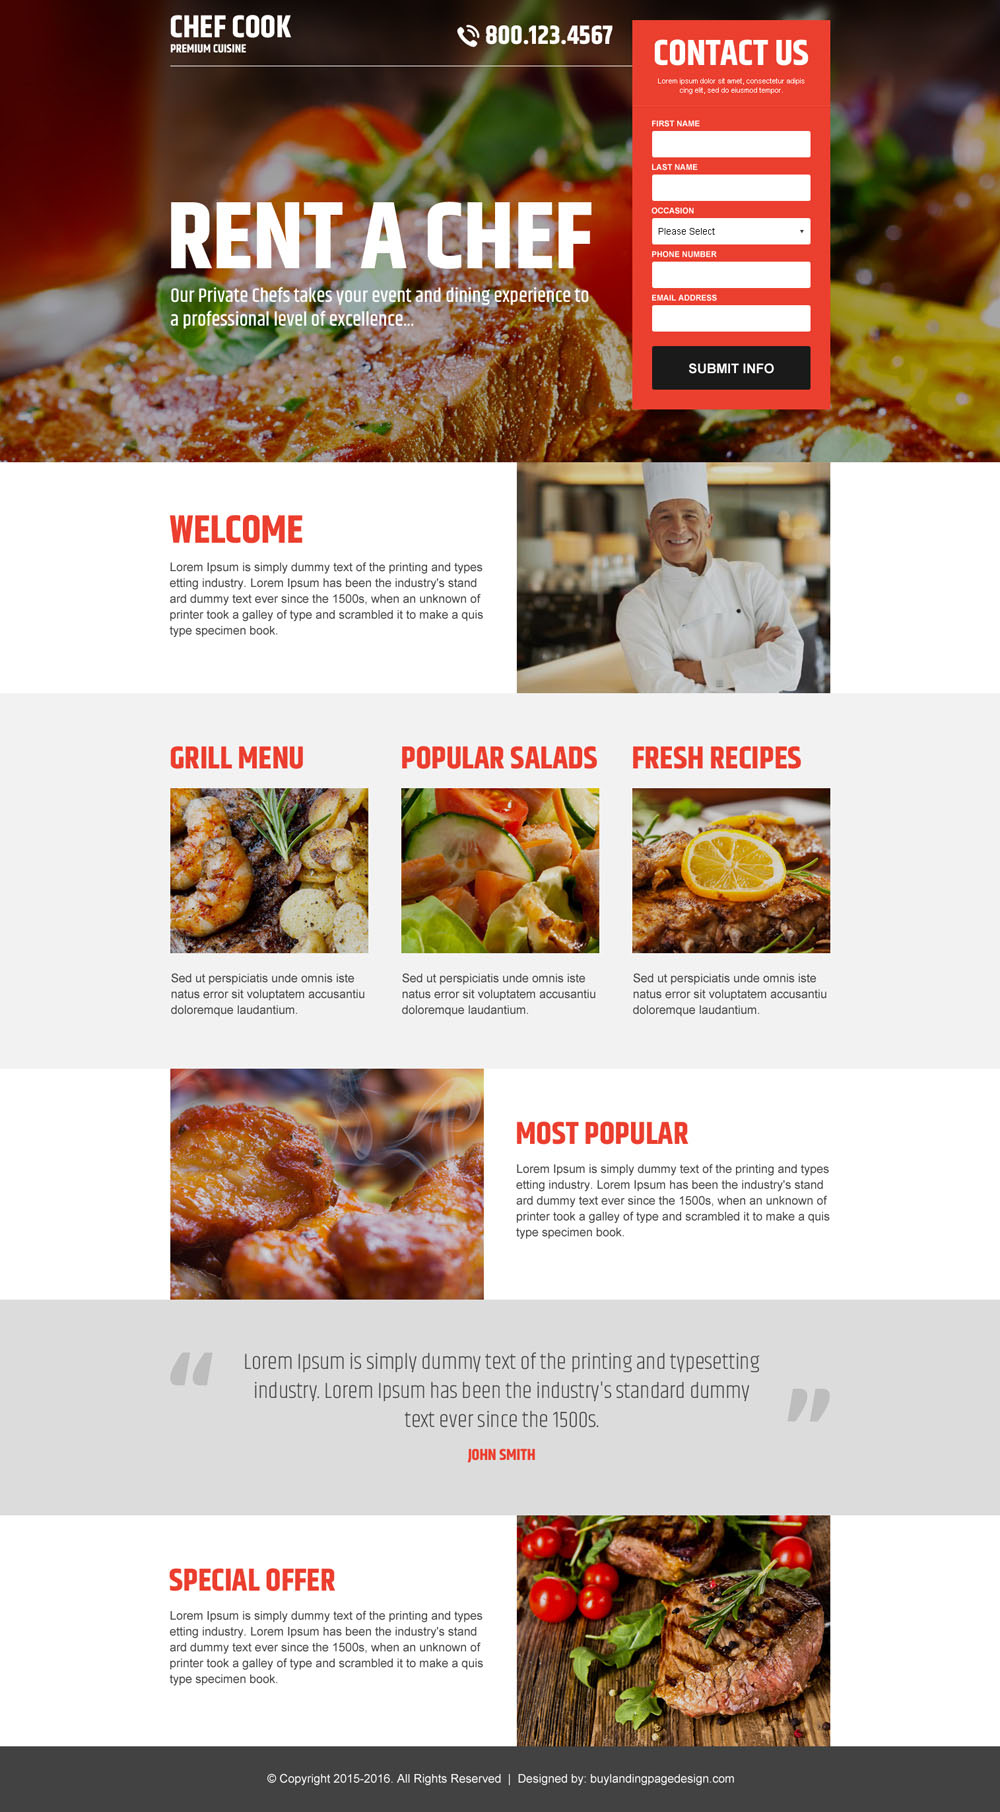 best-chef-cook-lead-capture-converting-landing-page-design-template-001